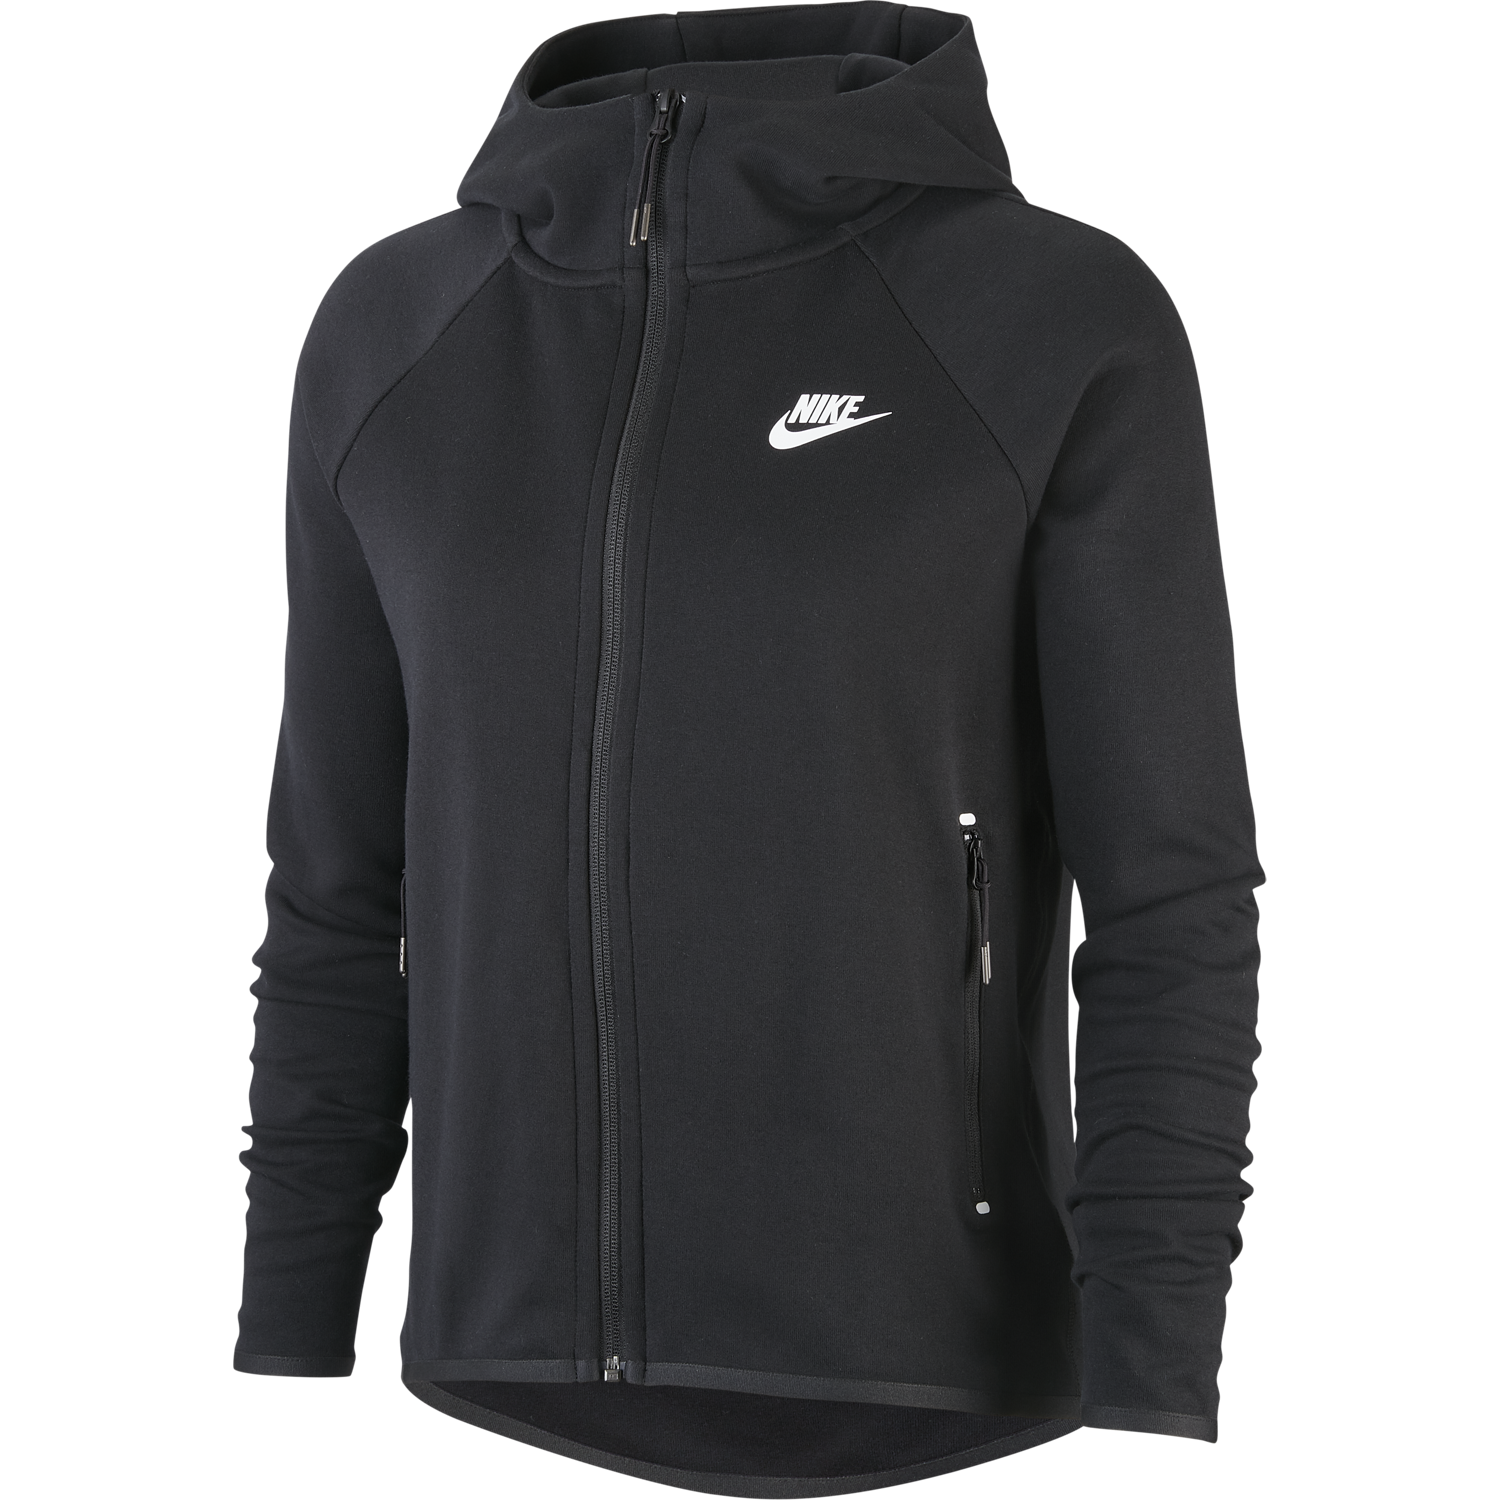 NIKE W'S HOODIES NIKE SPORTSWEAR TECH FLEECE CAPE